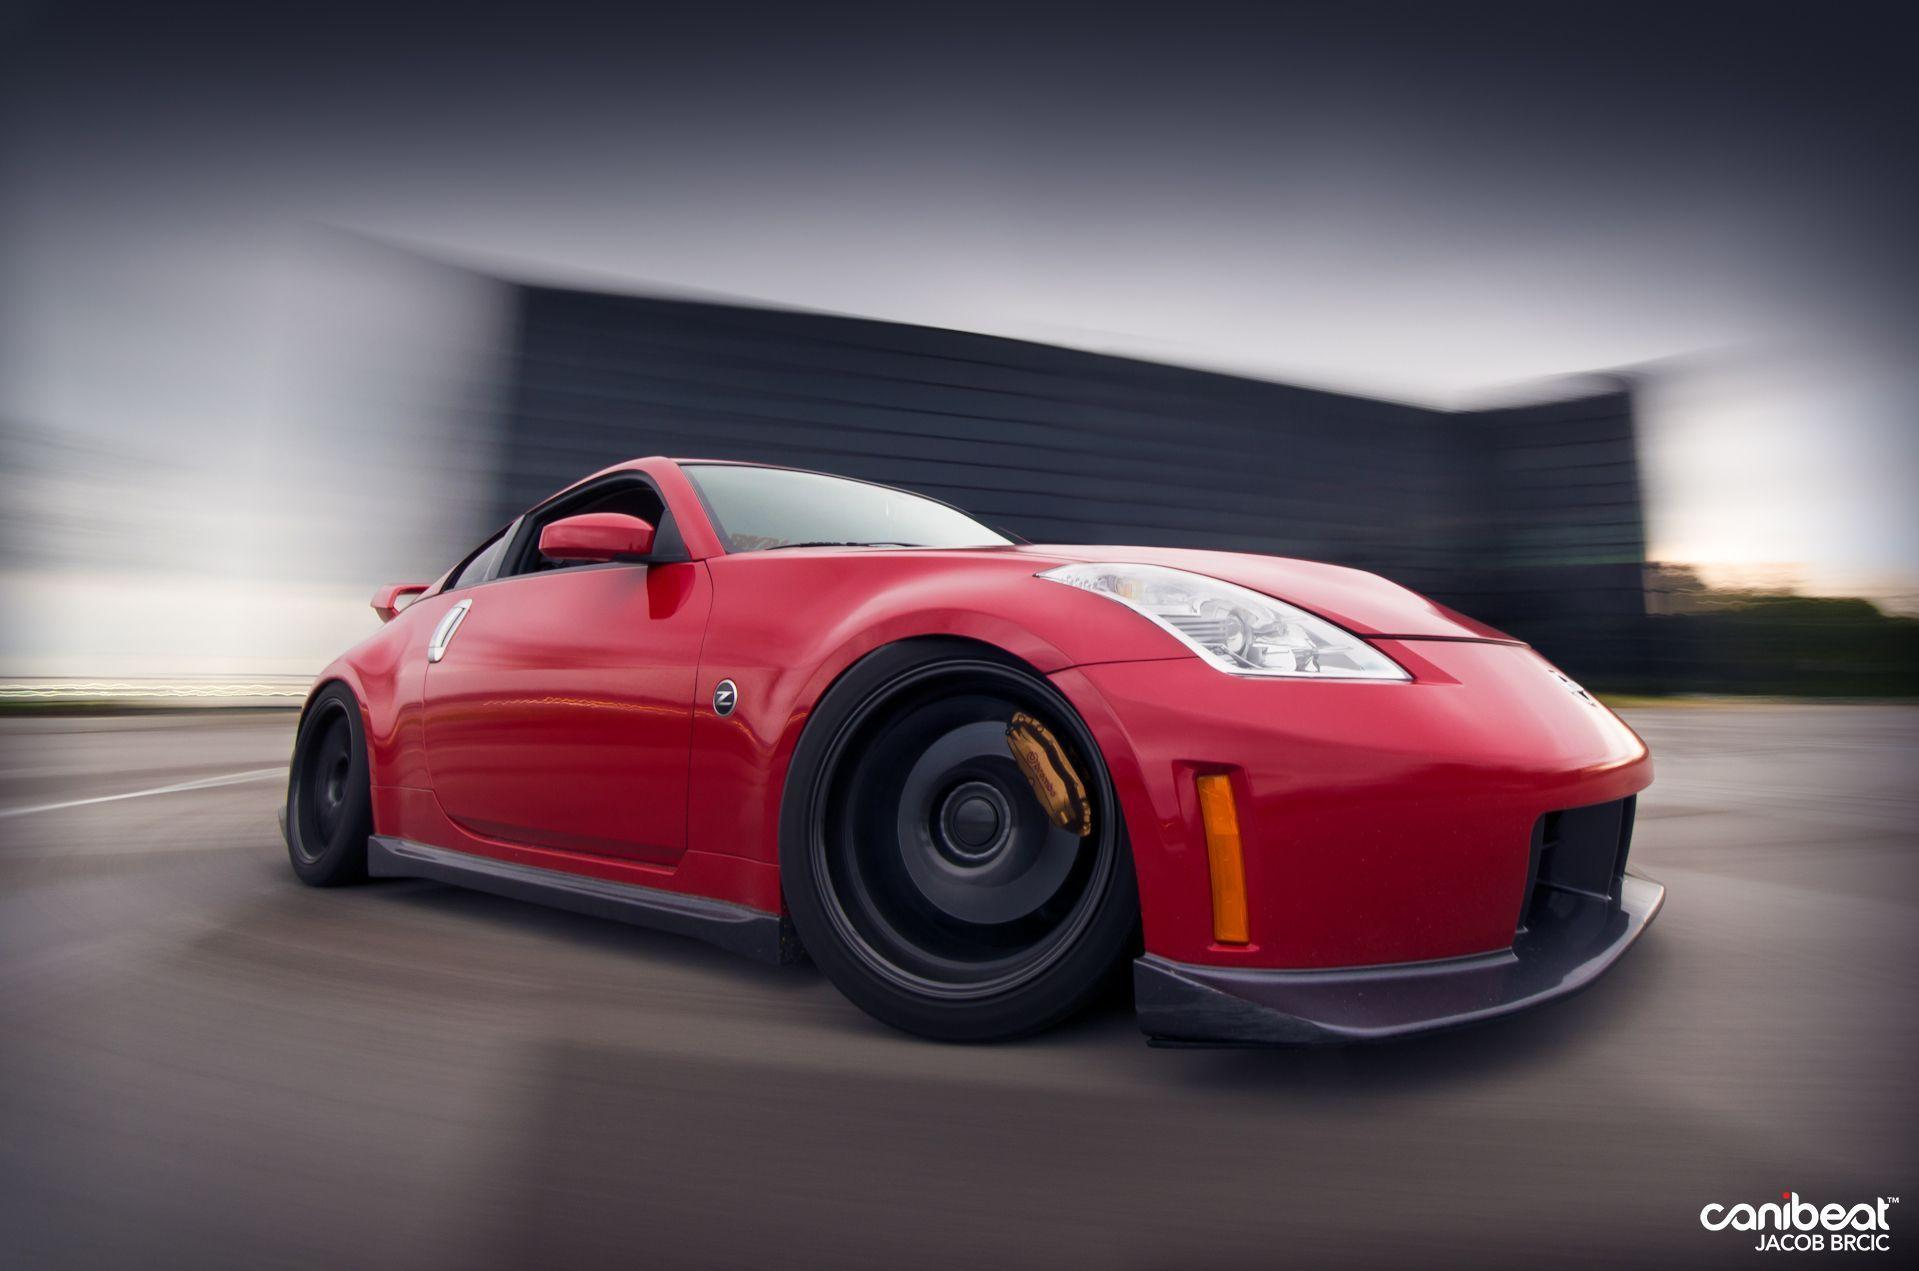 Wallpapers Wednesday: Matt Murray&Nismo – Canibeat